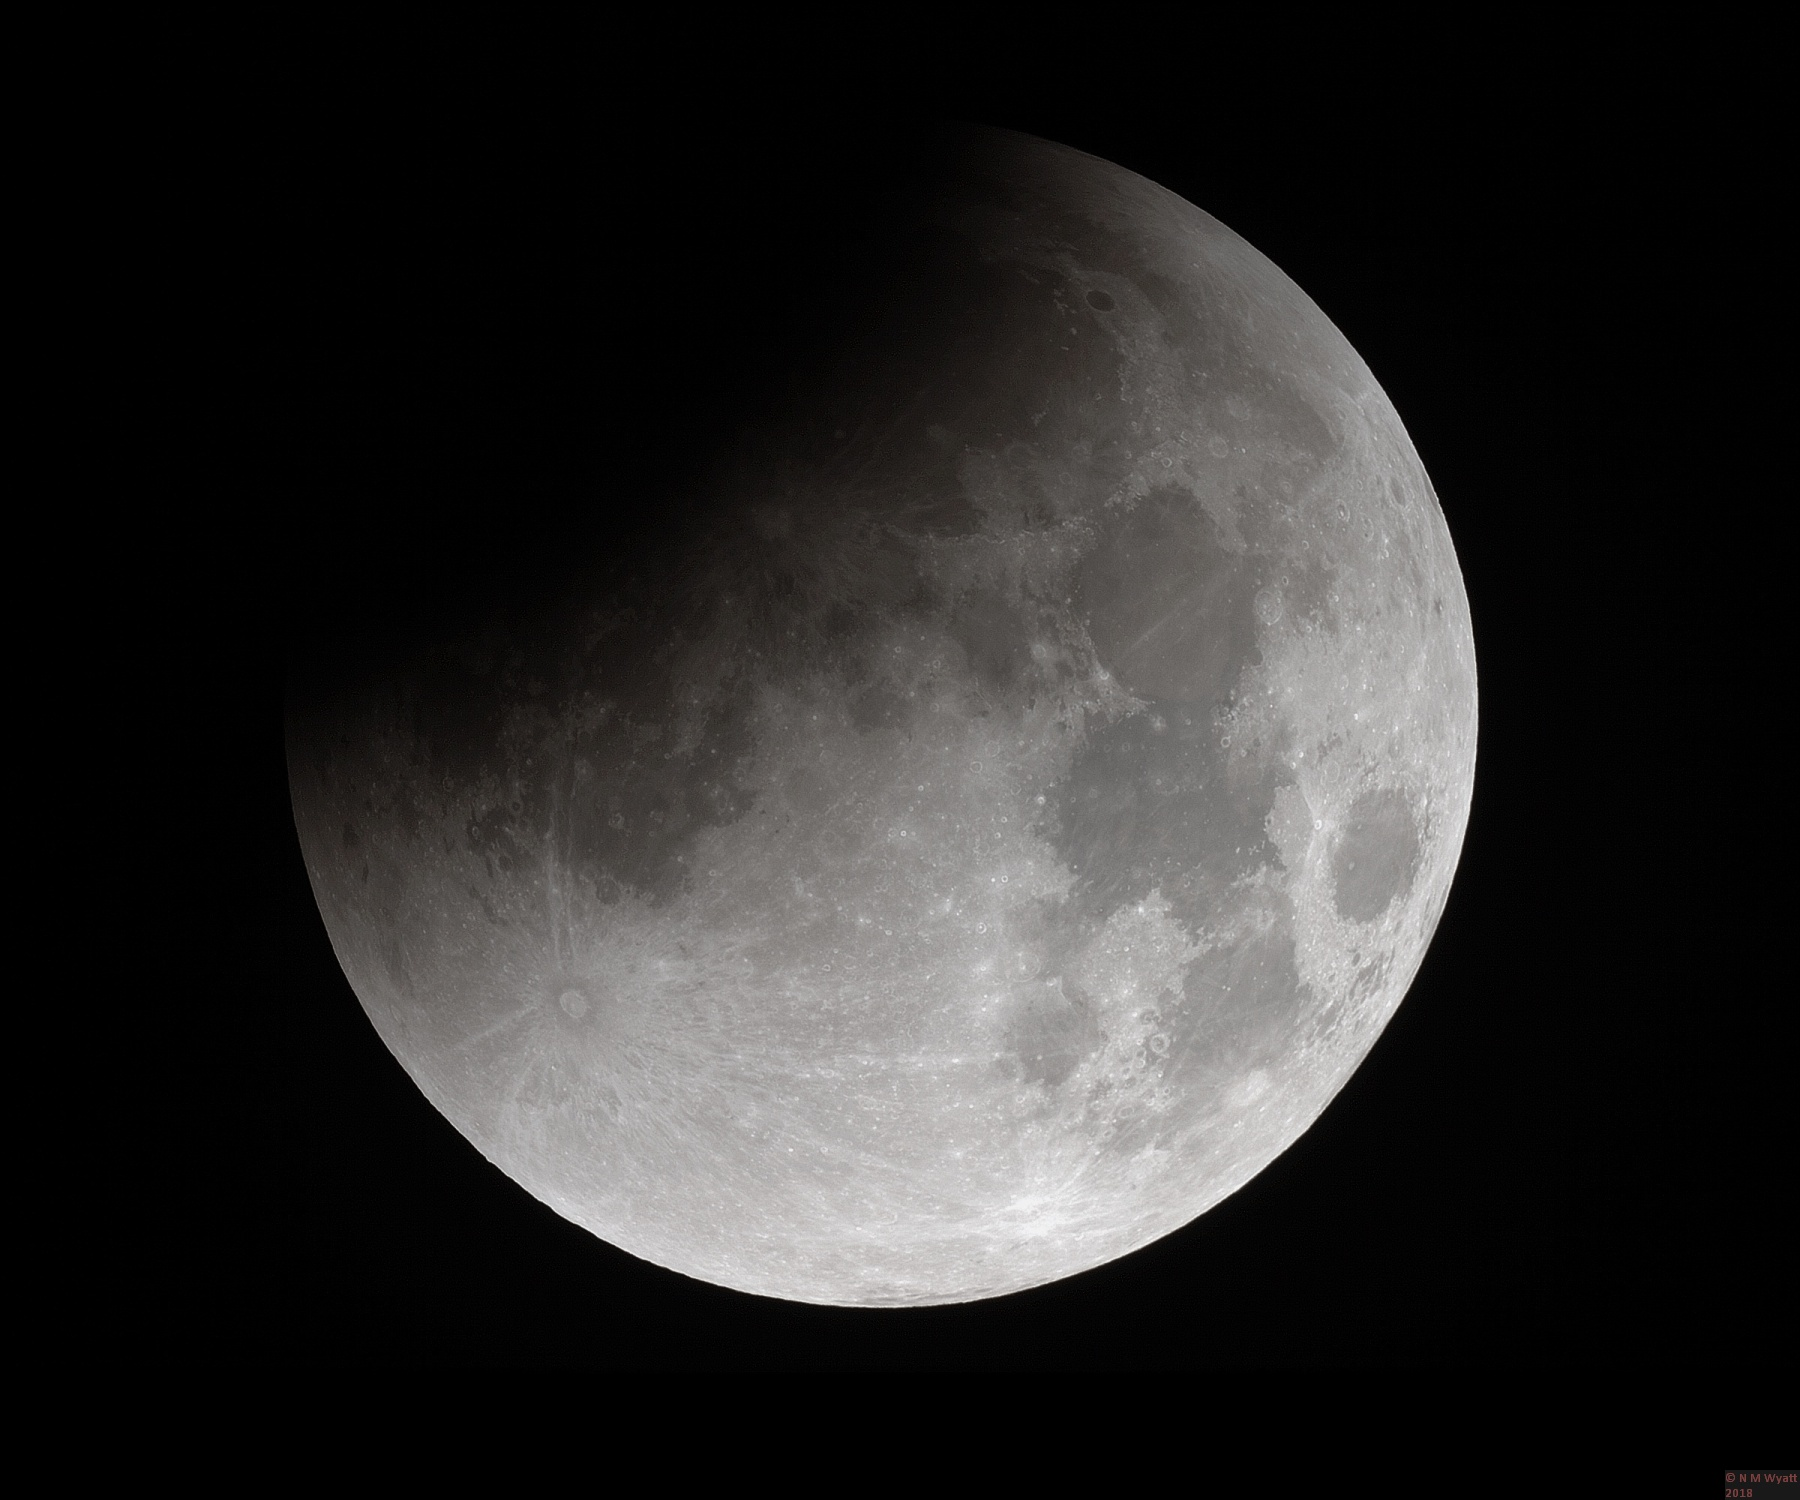 Progress of a Lunar Eclipse